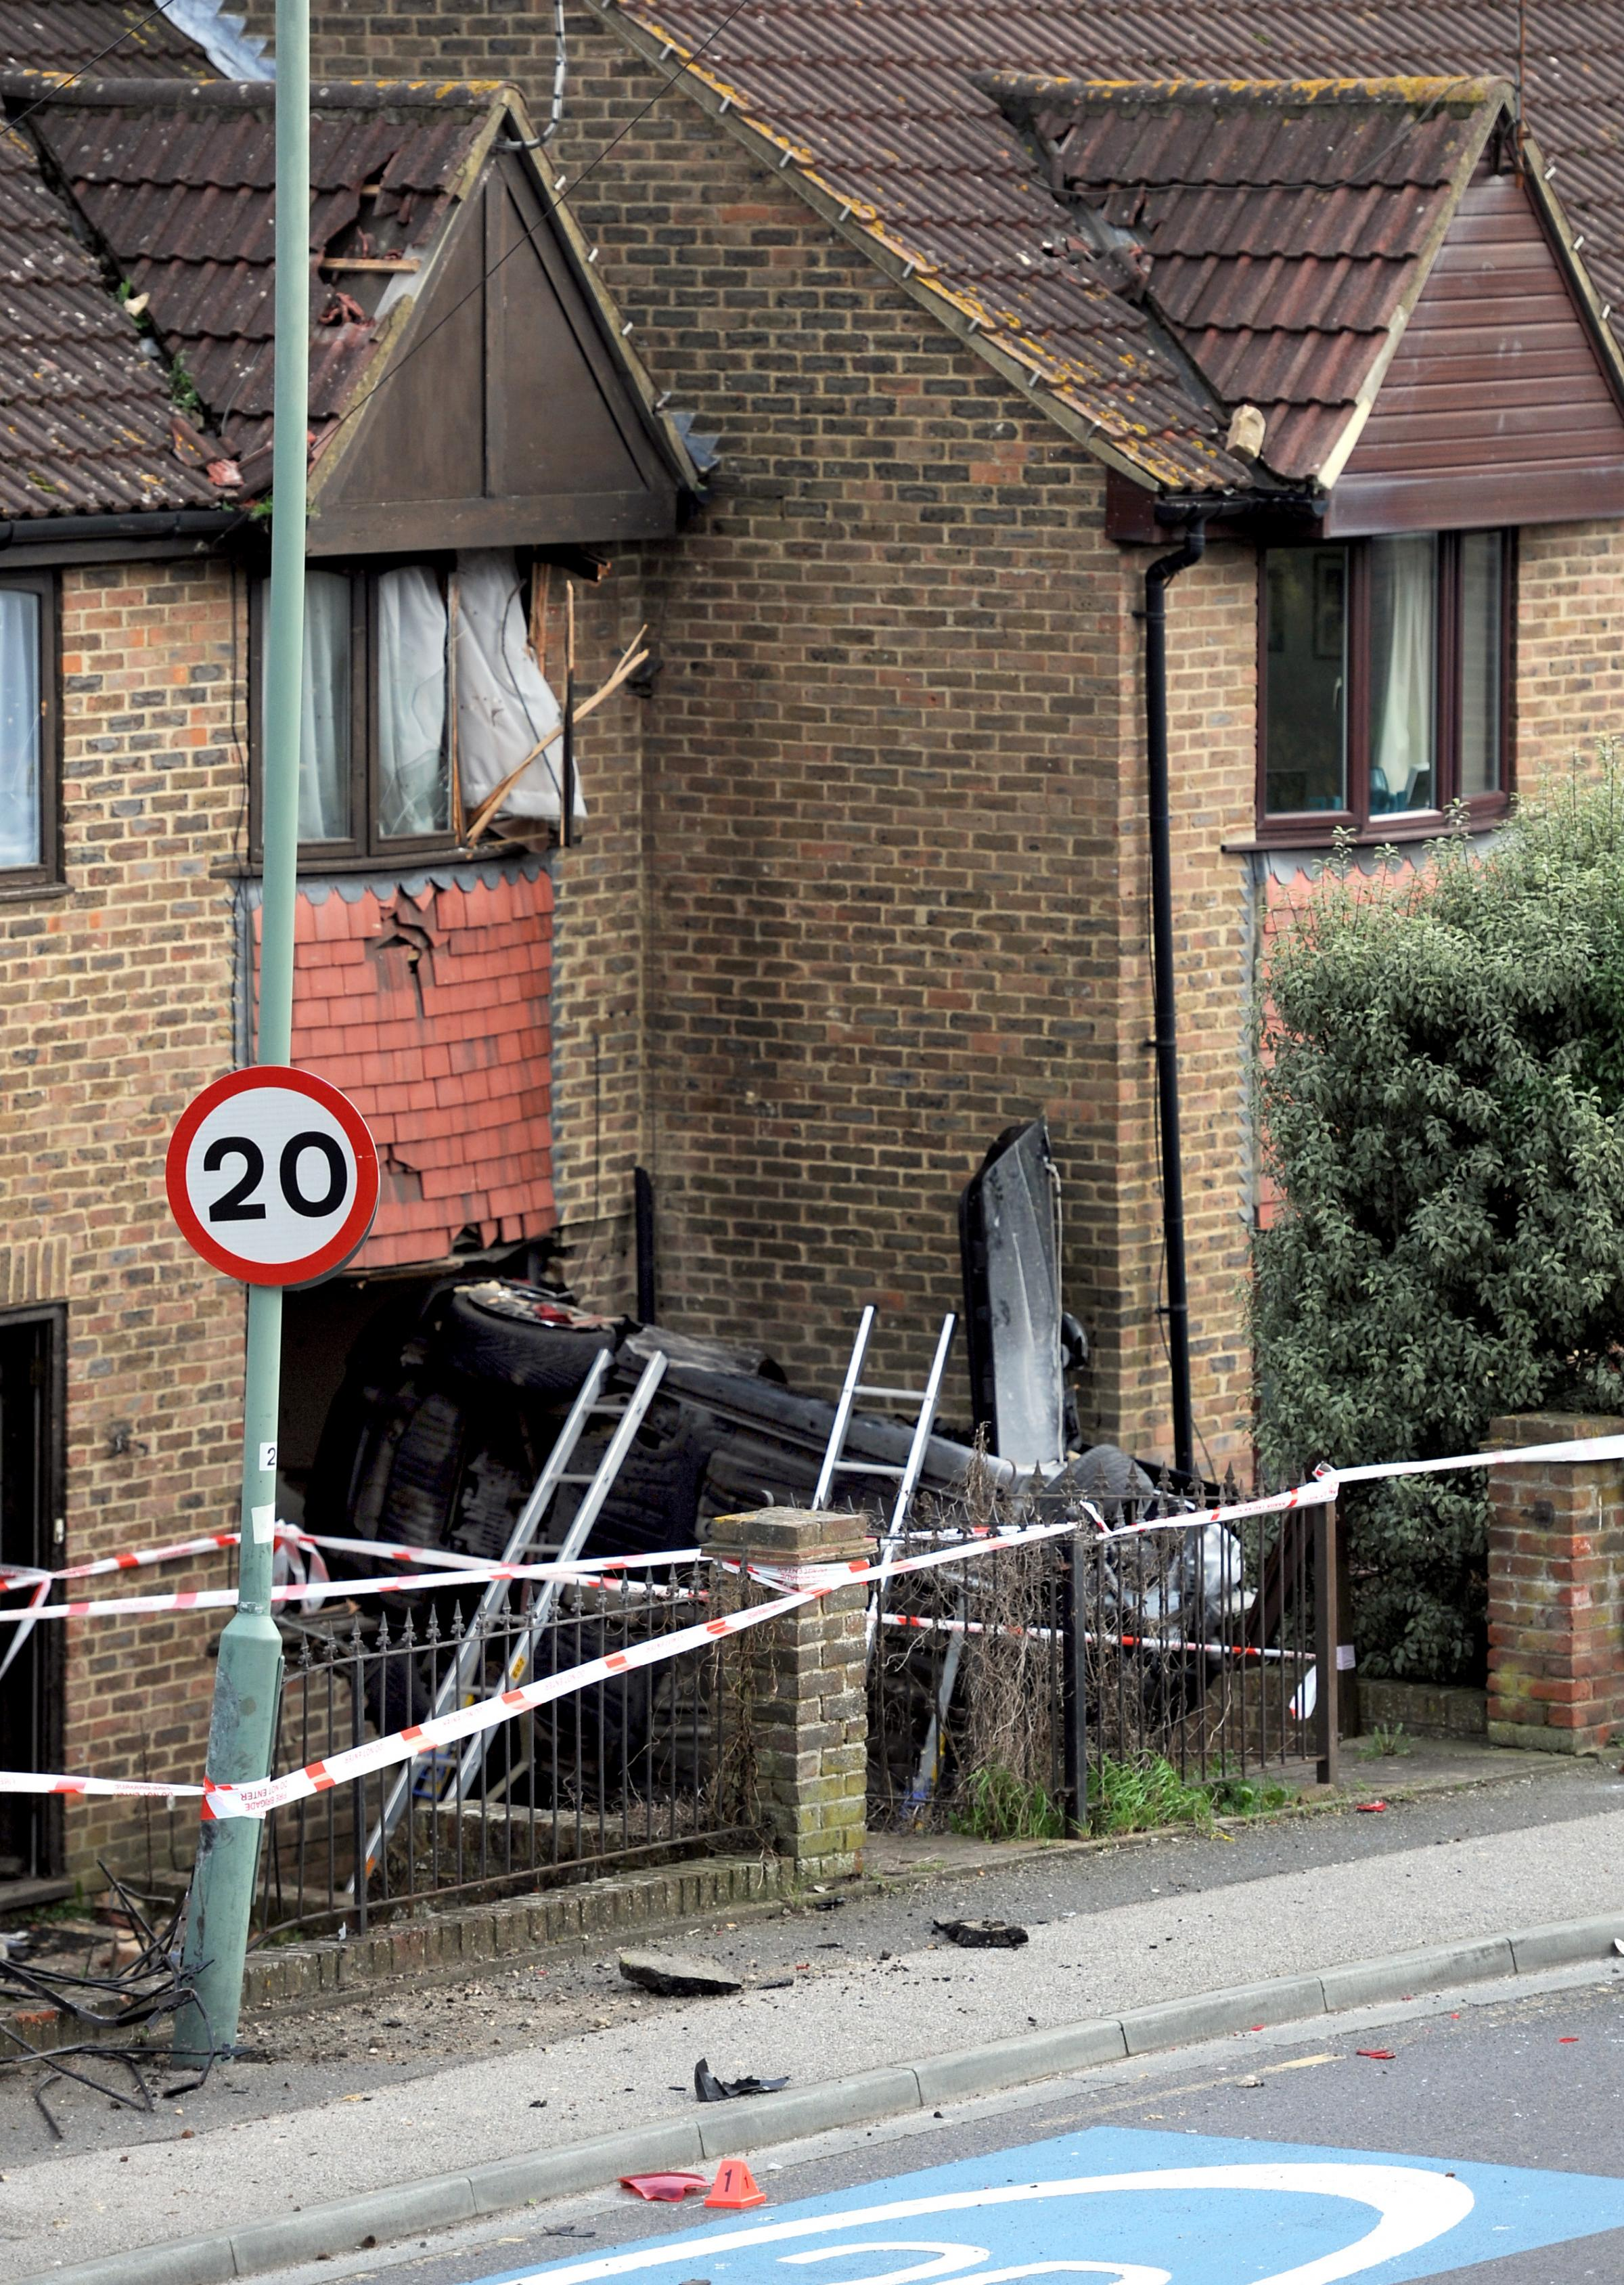 A stolen car crashed into a house in Valley Road, Portslade